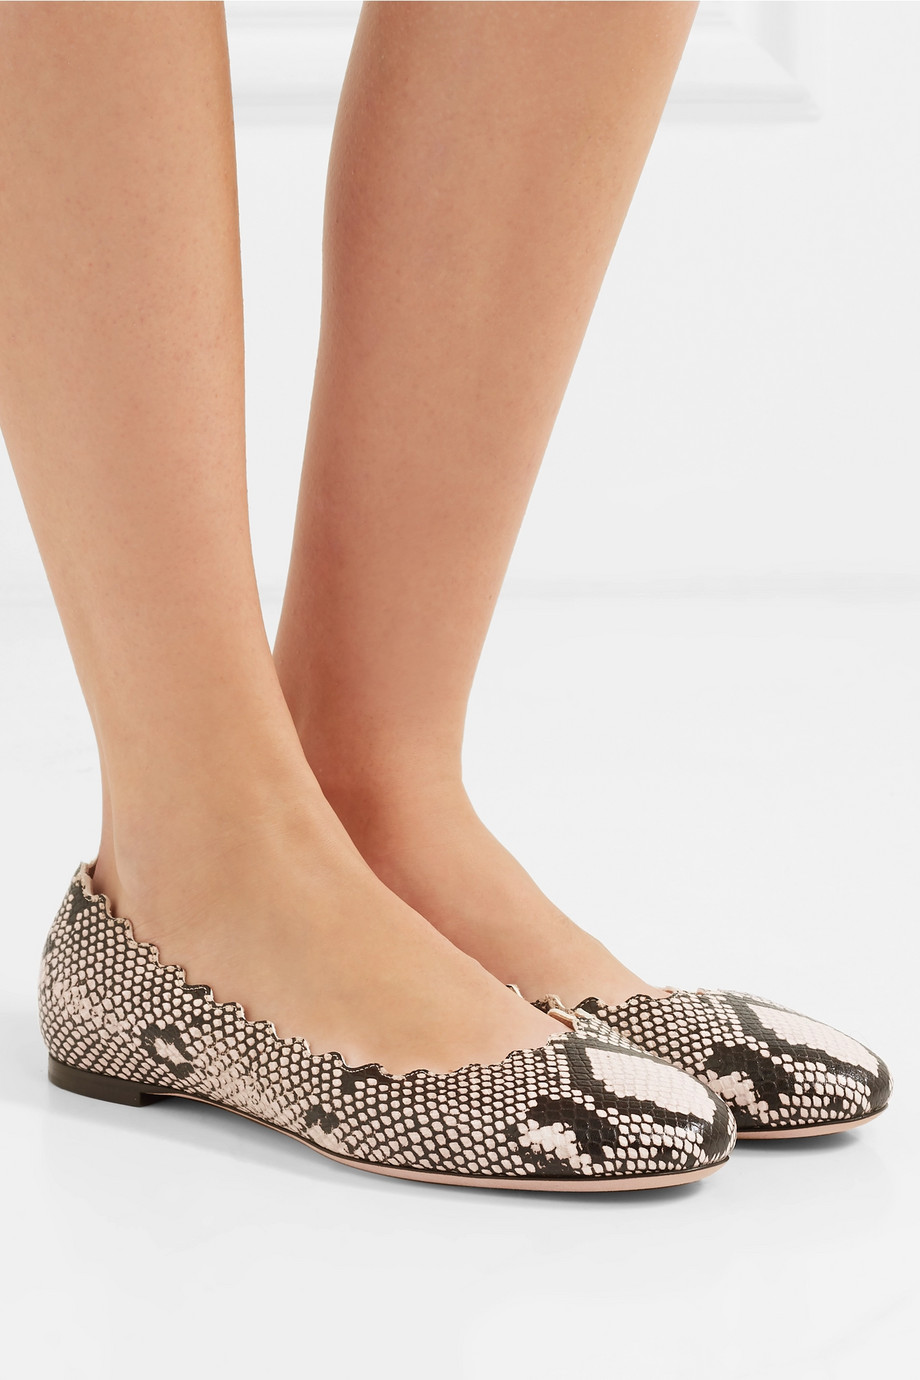 Chloé Lauren scalloped snake-effect leather ballet flats